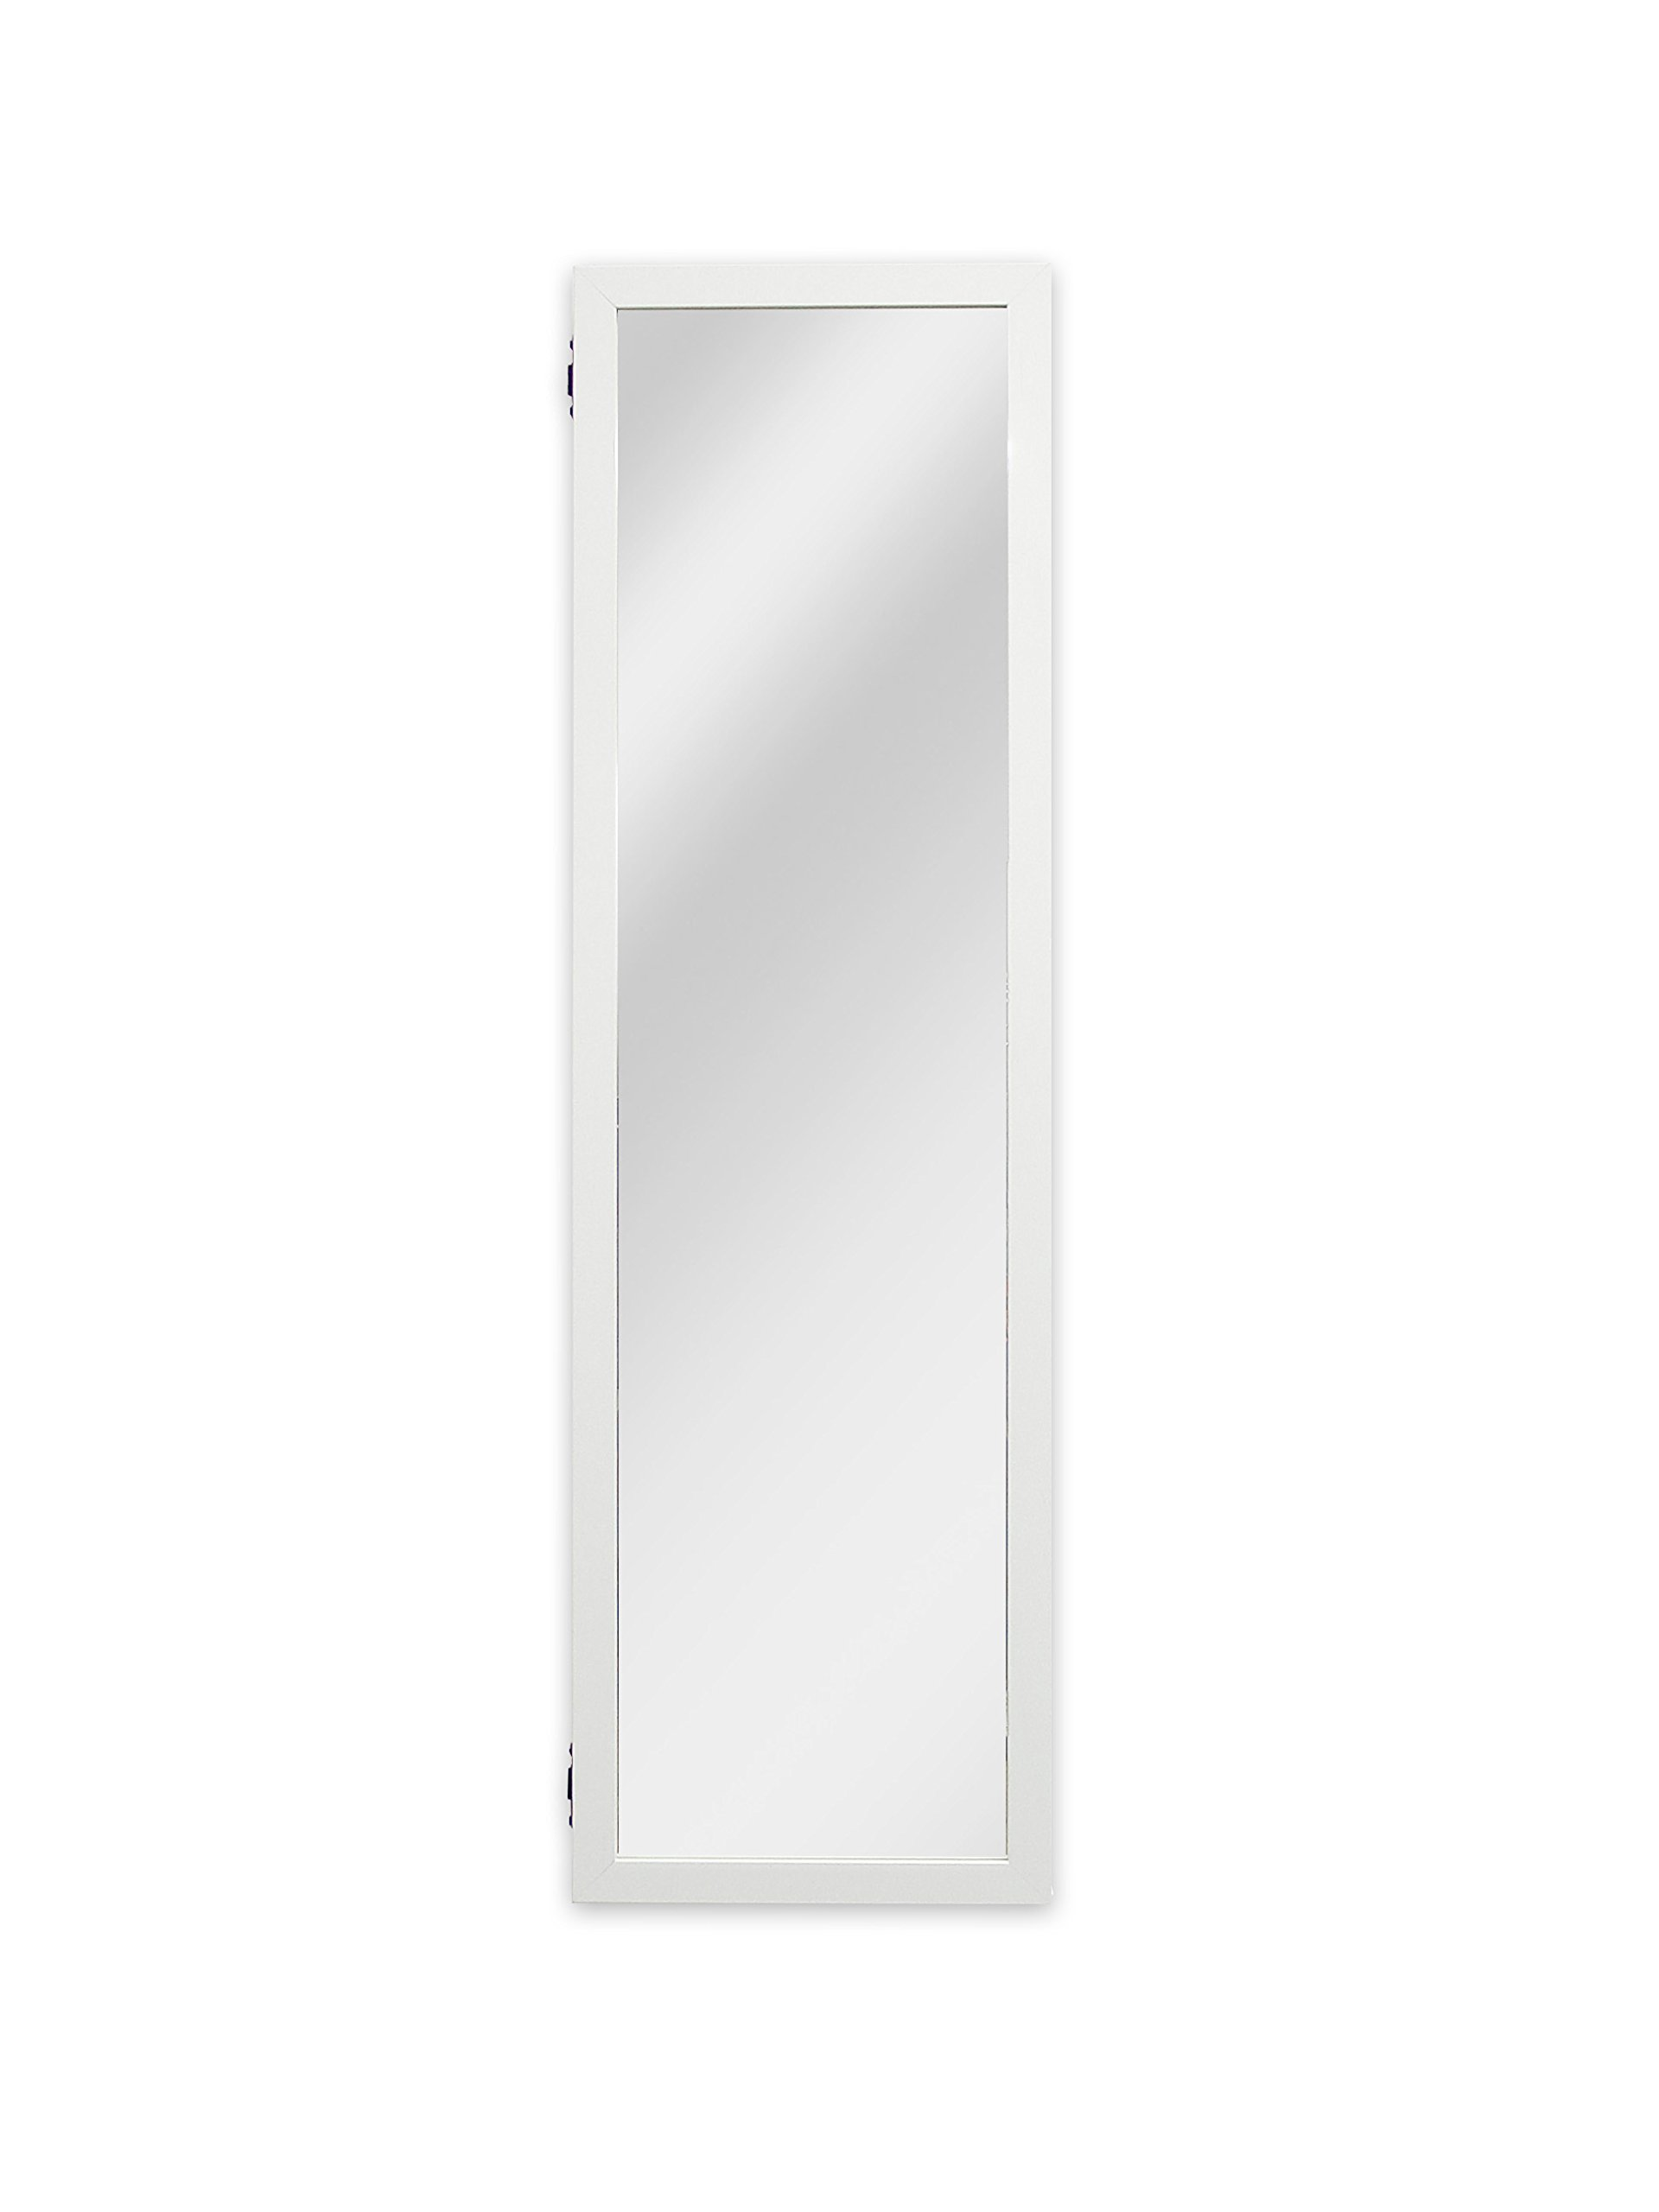 Plaza Astoria Wall/Door-Mount Jewelry Armoire, White by Plaza Astoria (Image #7)